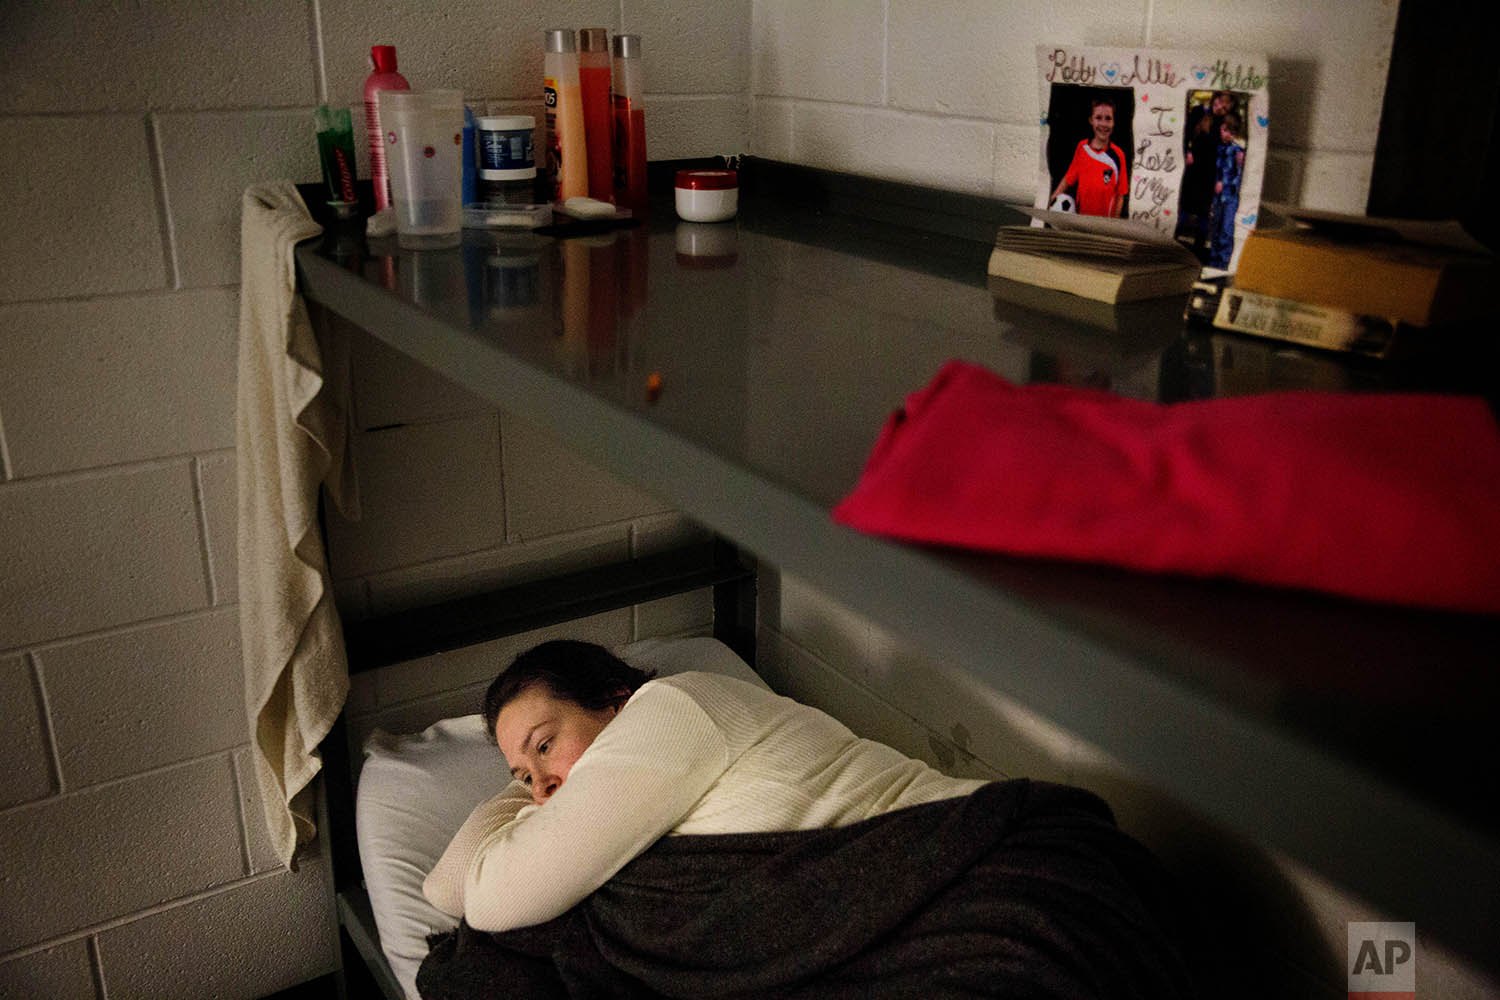 Krystle Sweat lies in bed before falling asleep in her cell at the Campbell County Jail in Jacksboro, Tenn., Monday, April 23, 2018. (AP Photo/David Goldman)